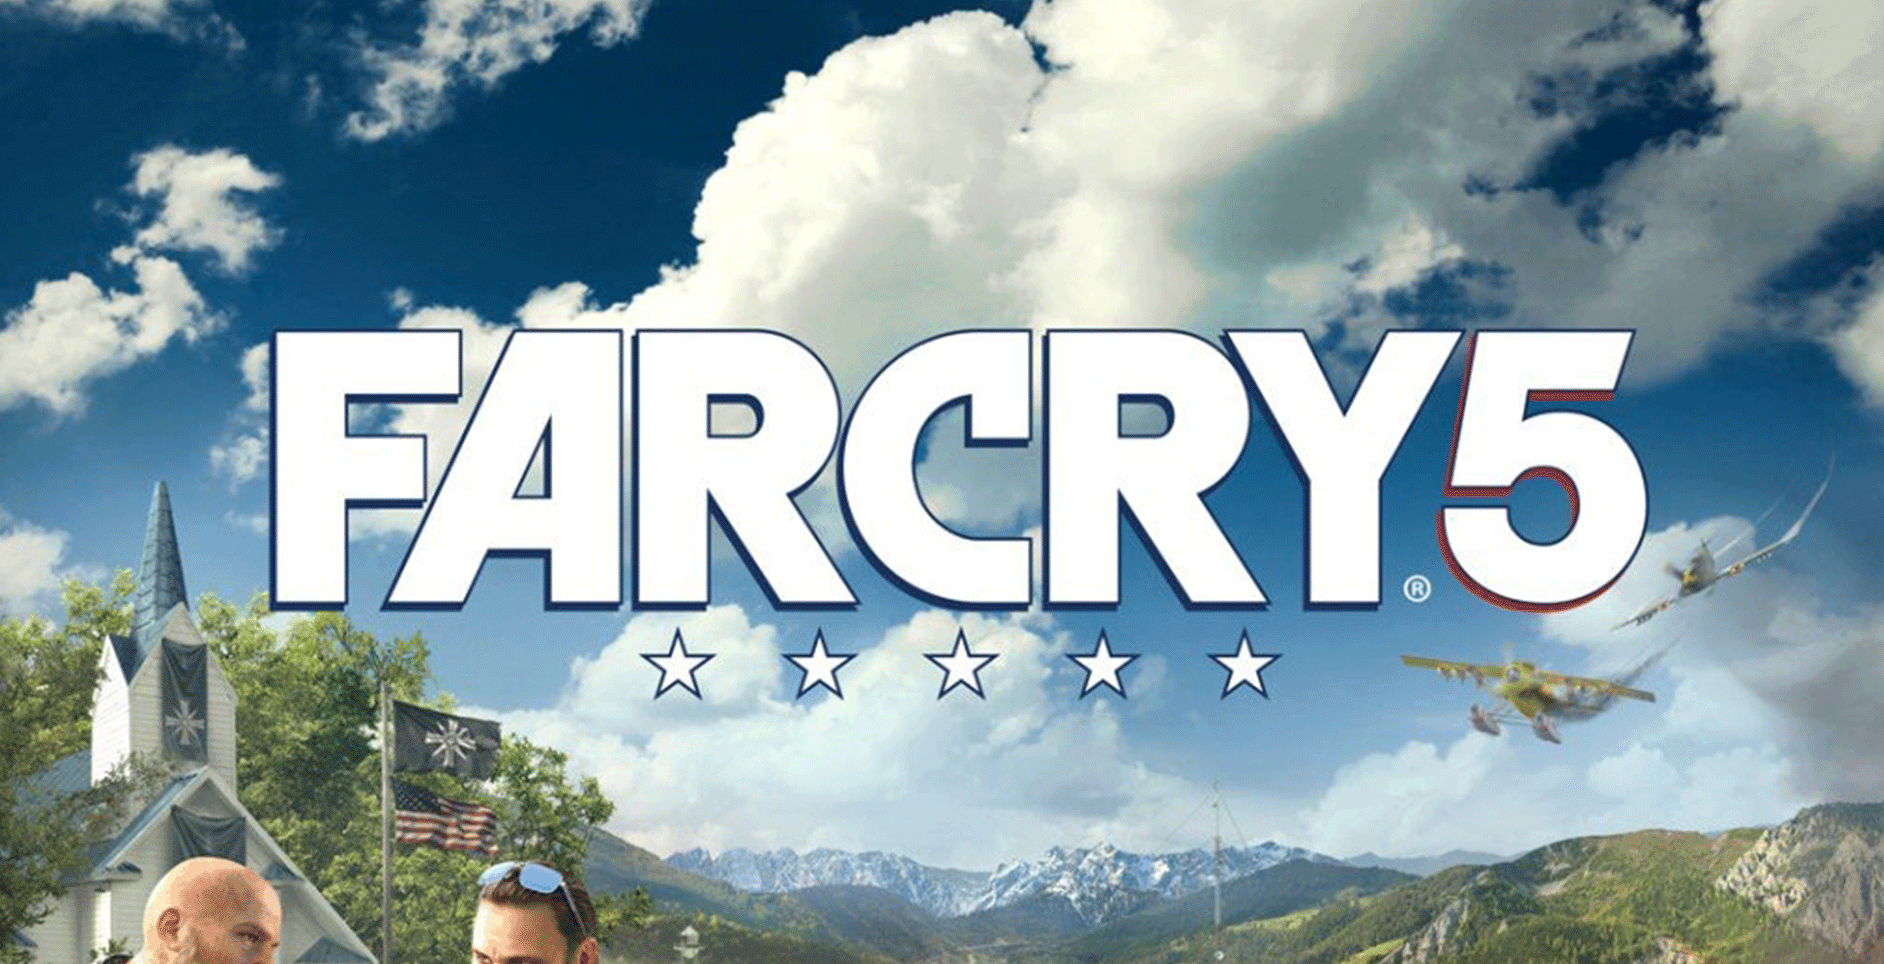 Far cry 5 Version Full Mobile Game Free Download